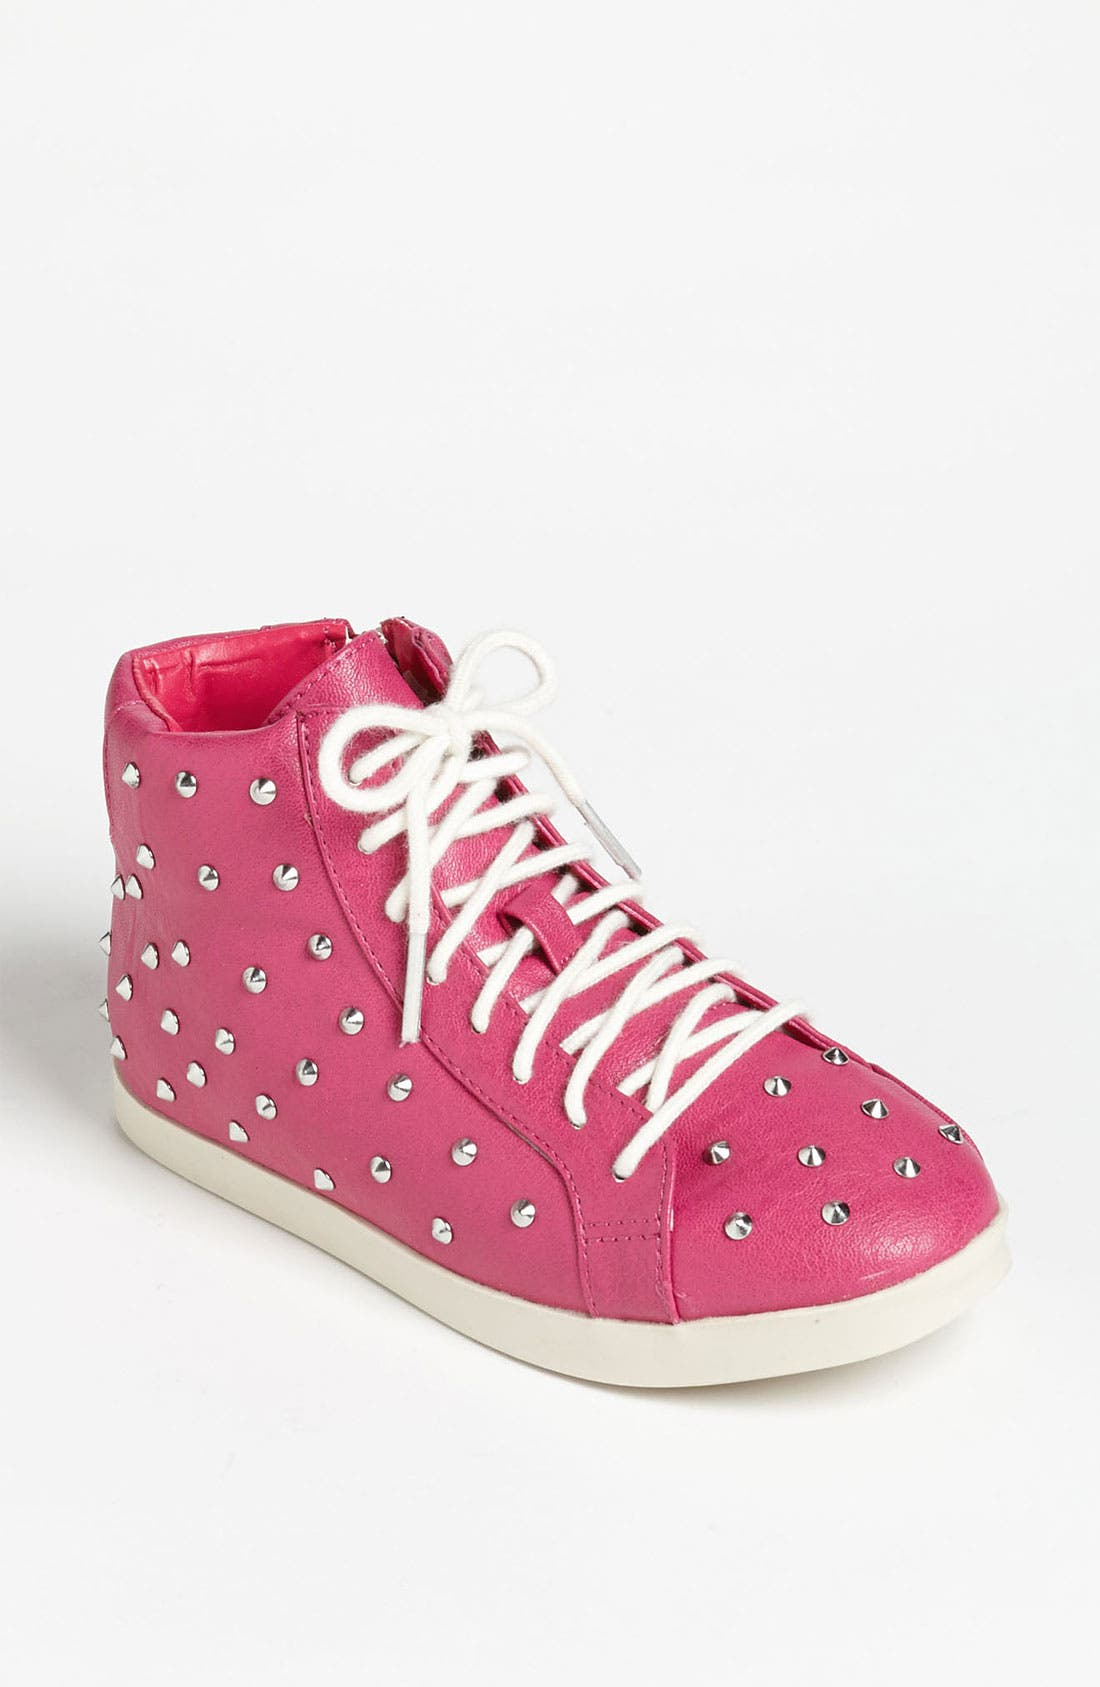 Main Image - Steve Madden 'Twylight' Sneaker (Little Kid & Big Kid)